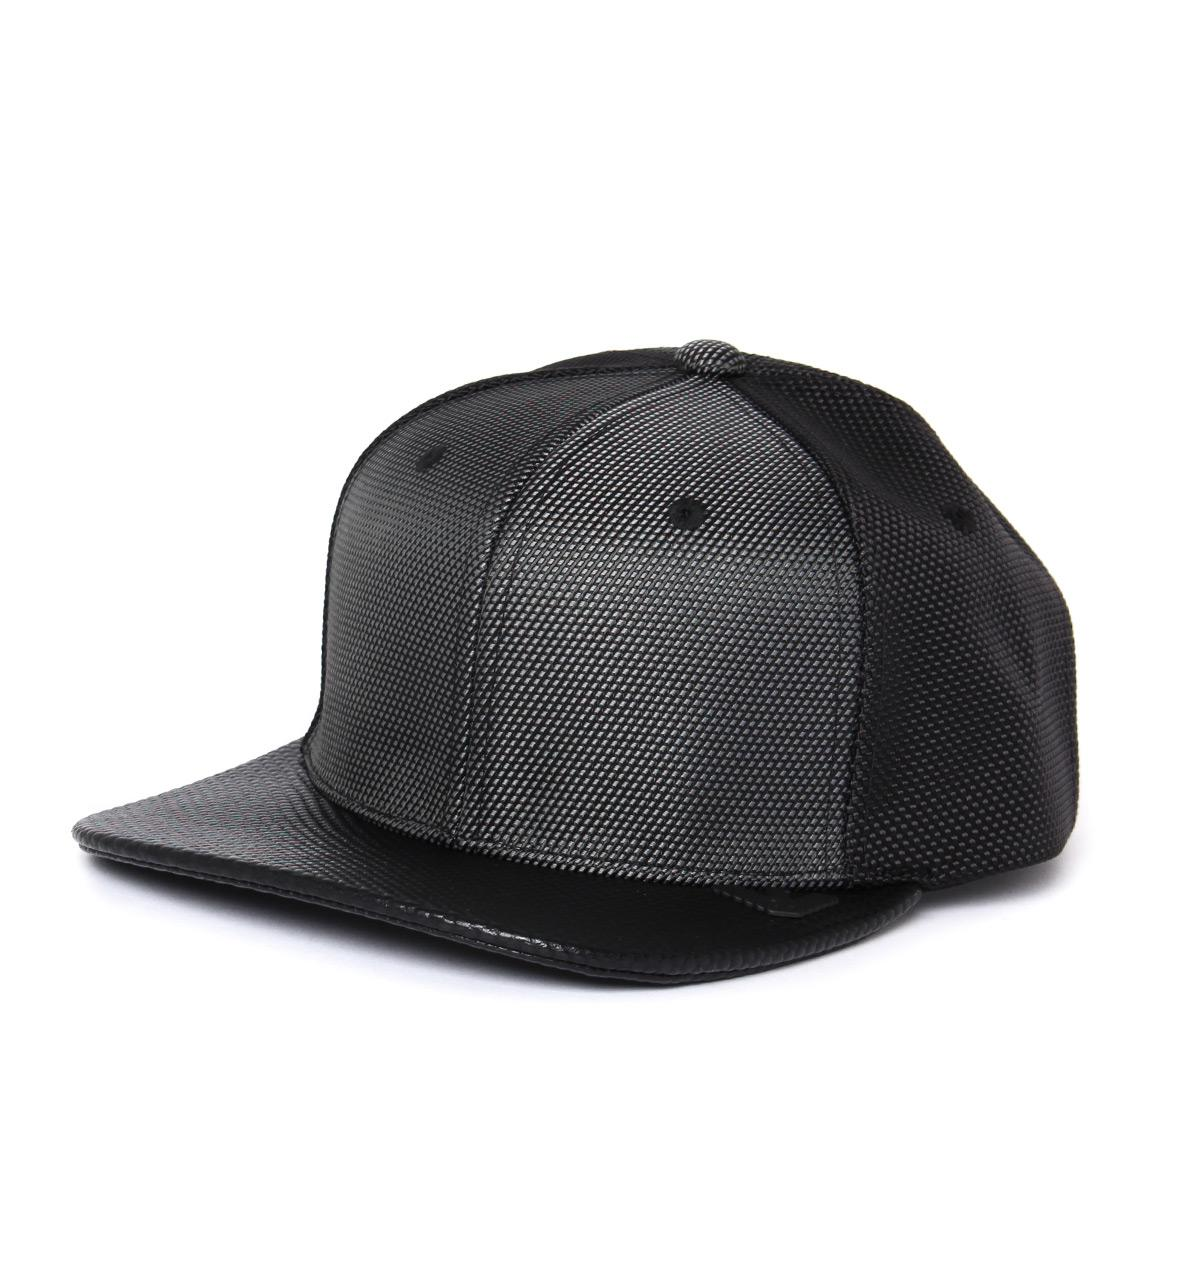 14ffd4d9985 Lyst - Armani Jeans Black Mesh Embossed Snap-back Baseball Cap in ...